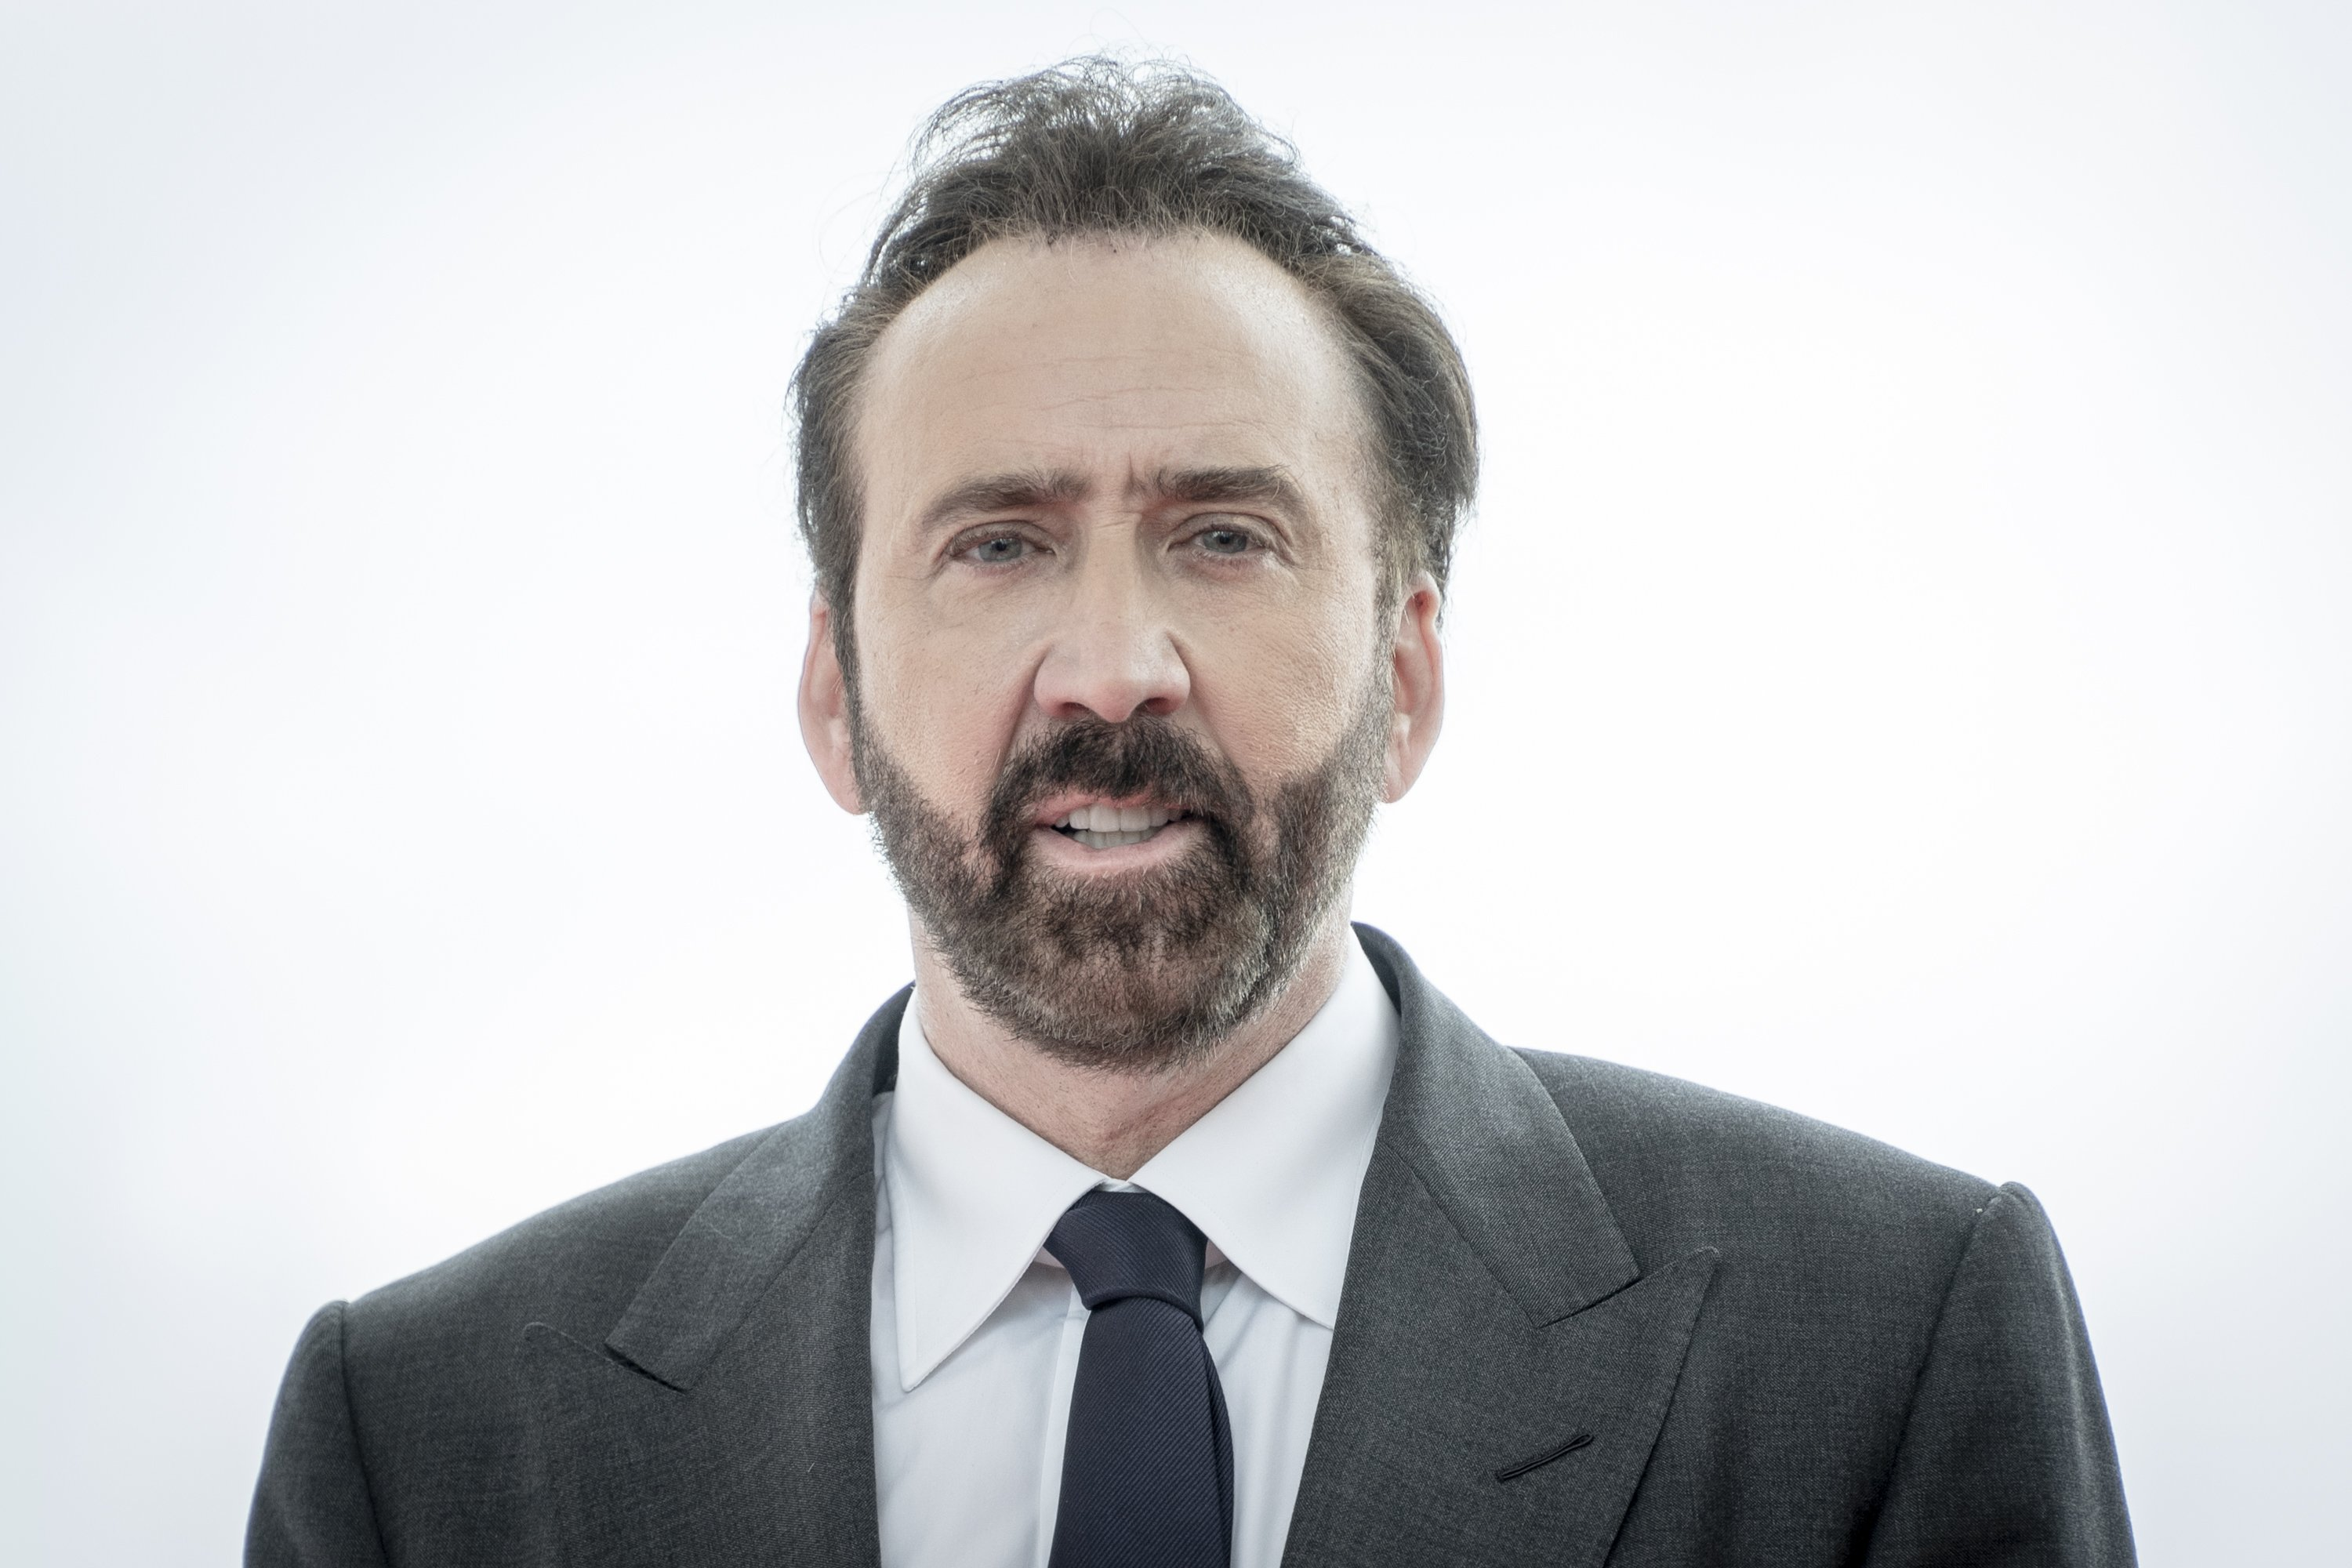 Nicolas Cage poses during a photocall on day three of the Sitges Film Festival 2018 on October 6, 2018, in Sitges, Spain  | Photo: Getty Images.